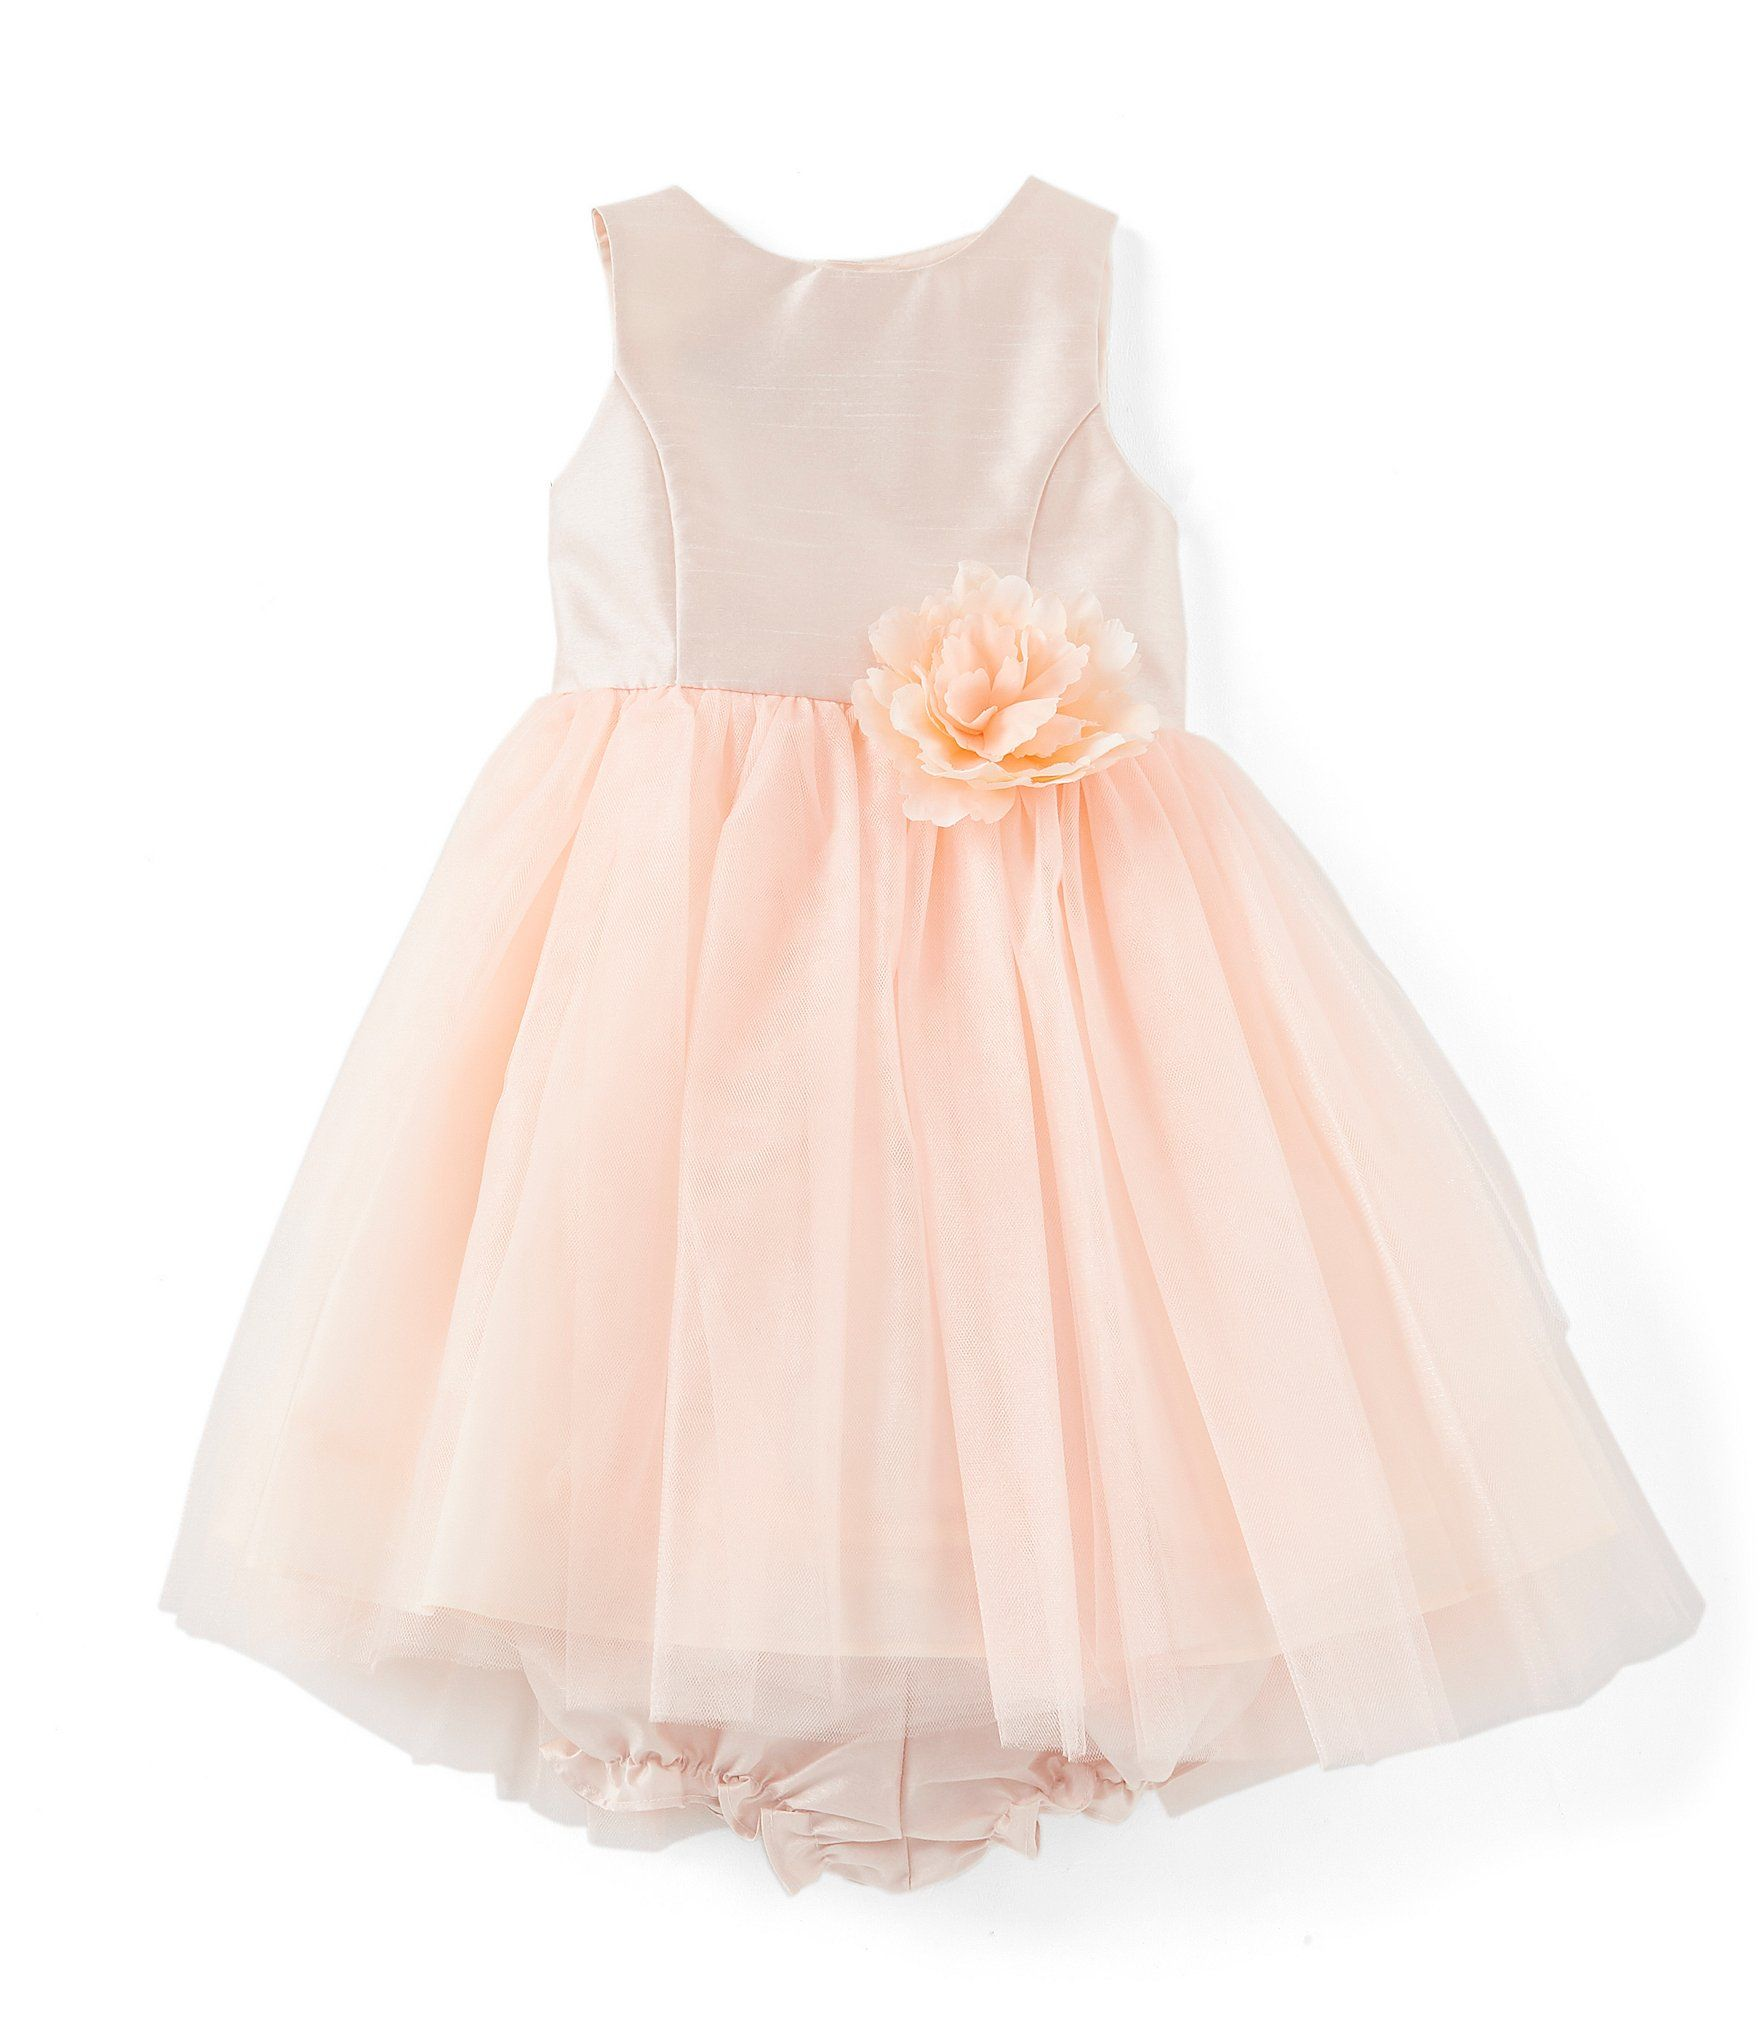 857ed8cb788 Pippa   Julie Baby Girls 12-24 Months Flower-Appliqued Ballerina Dress   Dillards